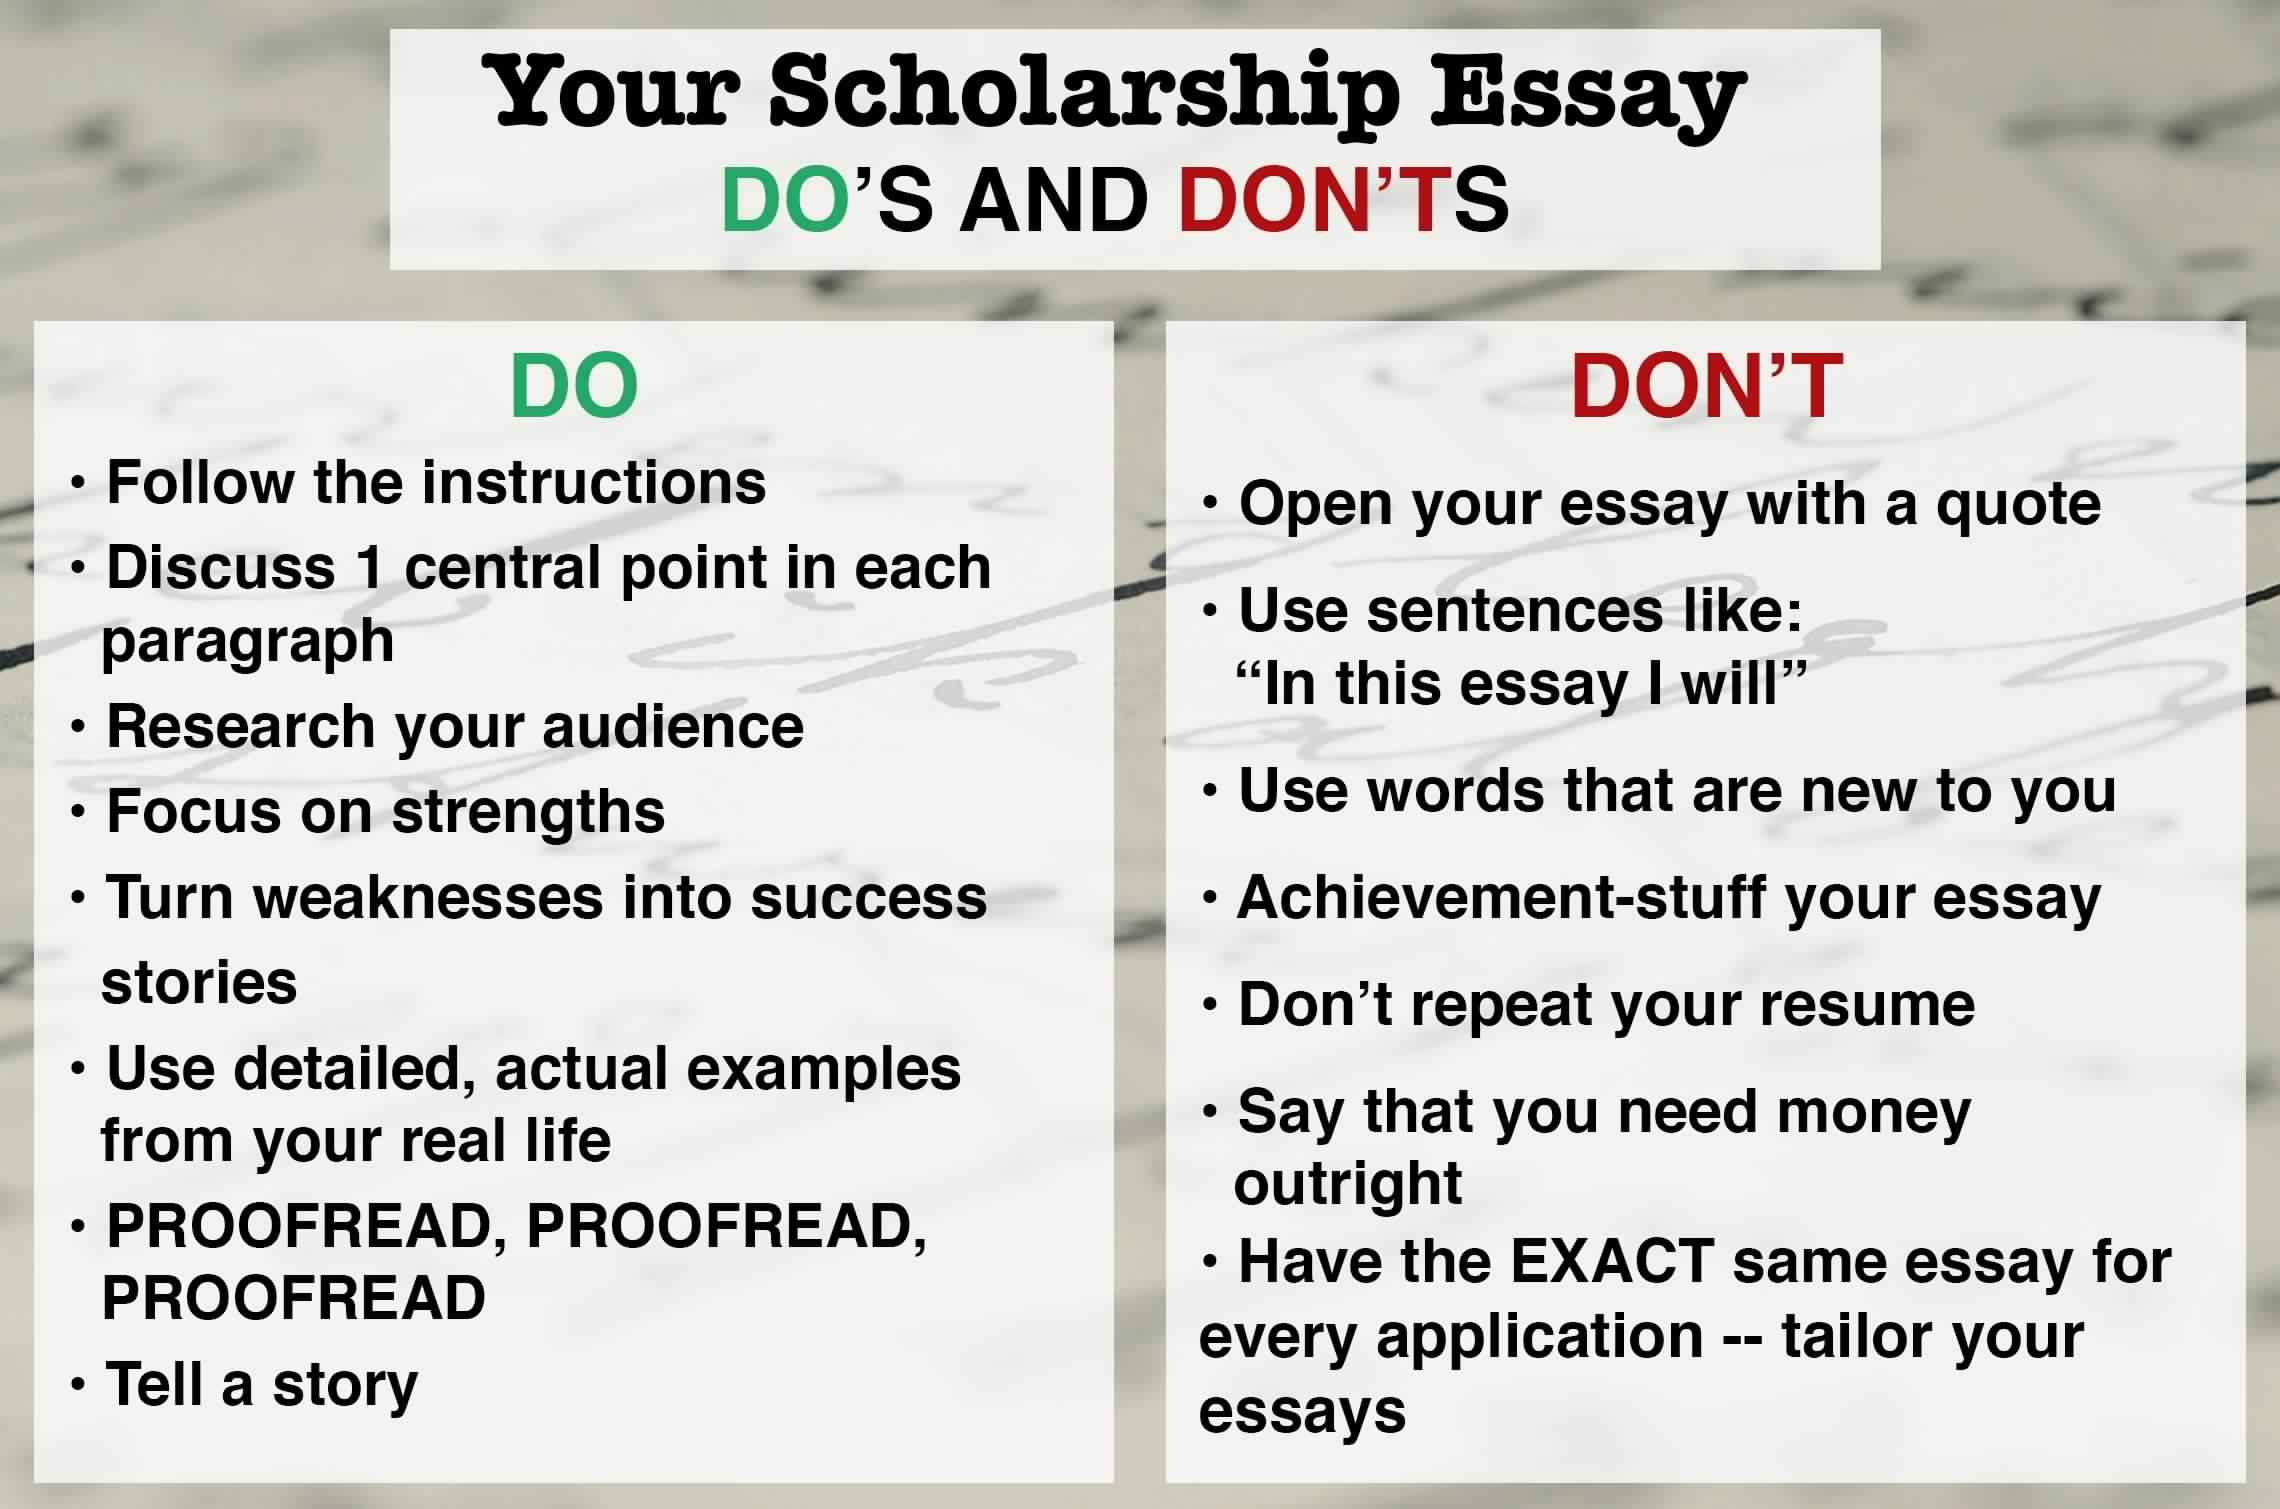 Write my Essay • Pay & Get High Quality Paper Writing Services